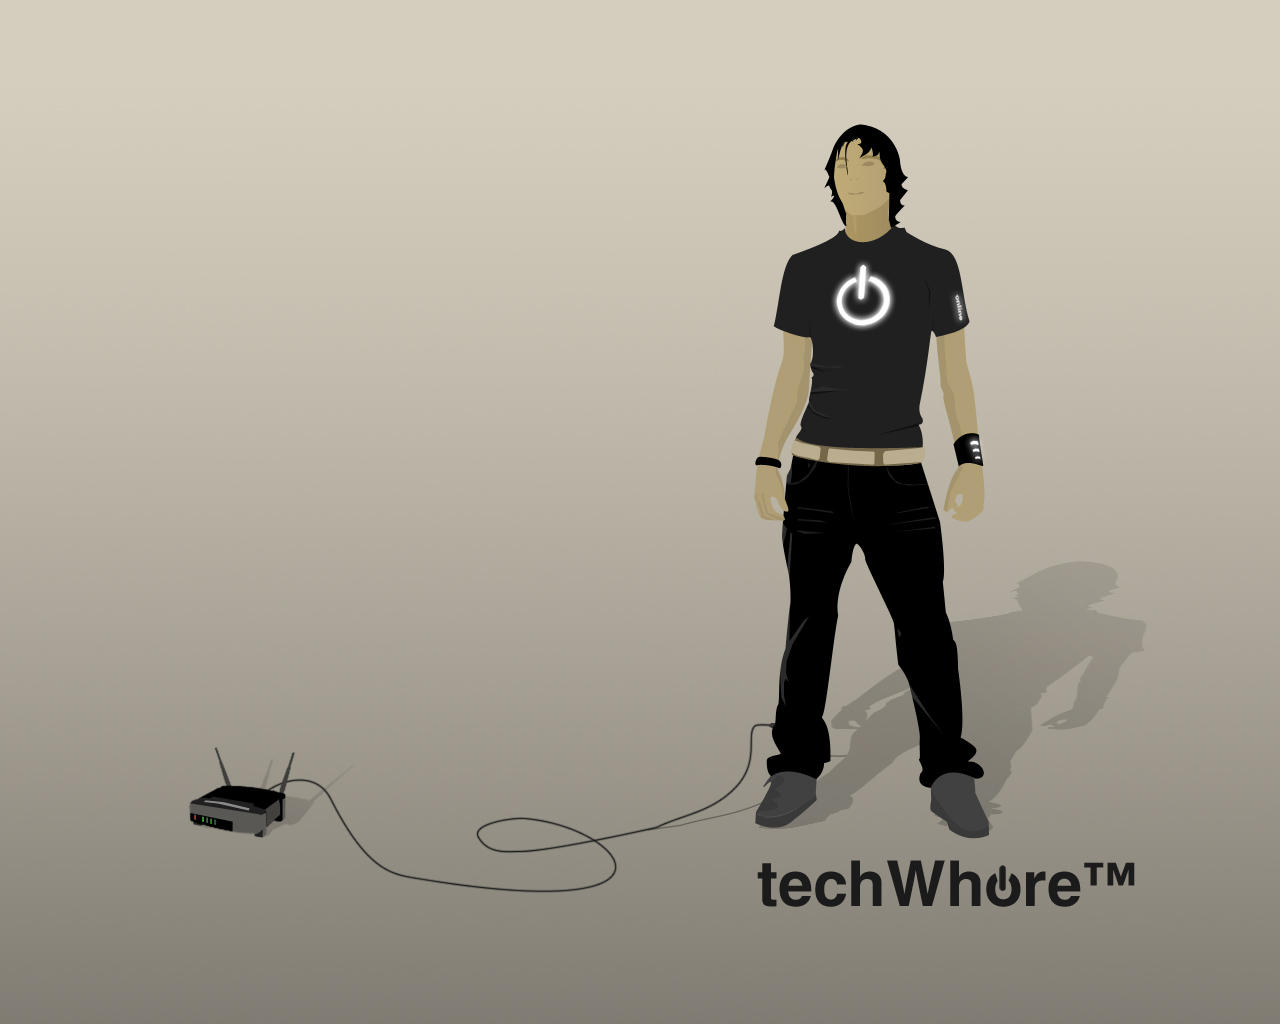 _TechWhore by 1saint